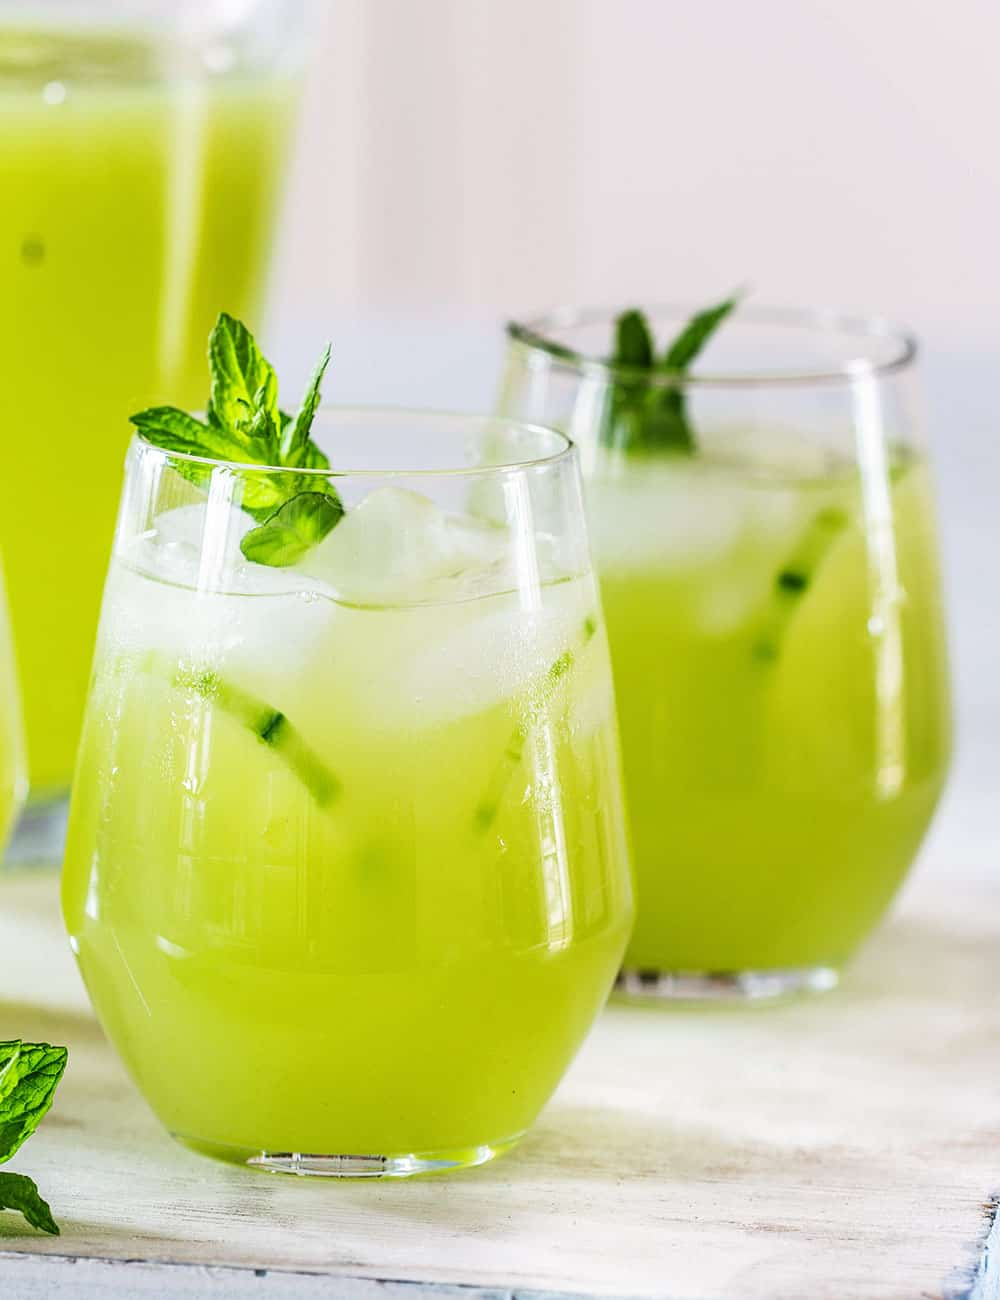 Agua de pepino (cucumber water) served on glasses with ice, mint leaves and cucumber slices.